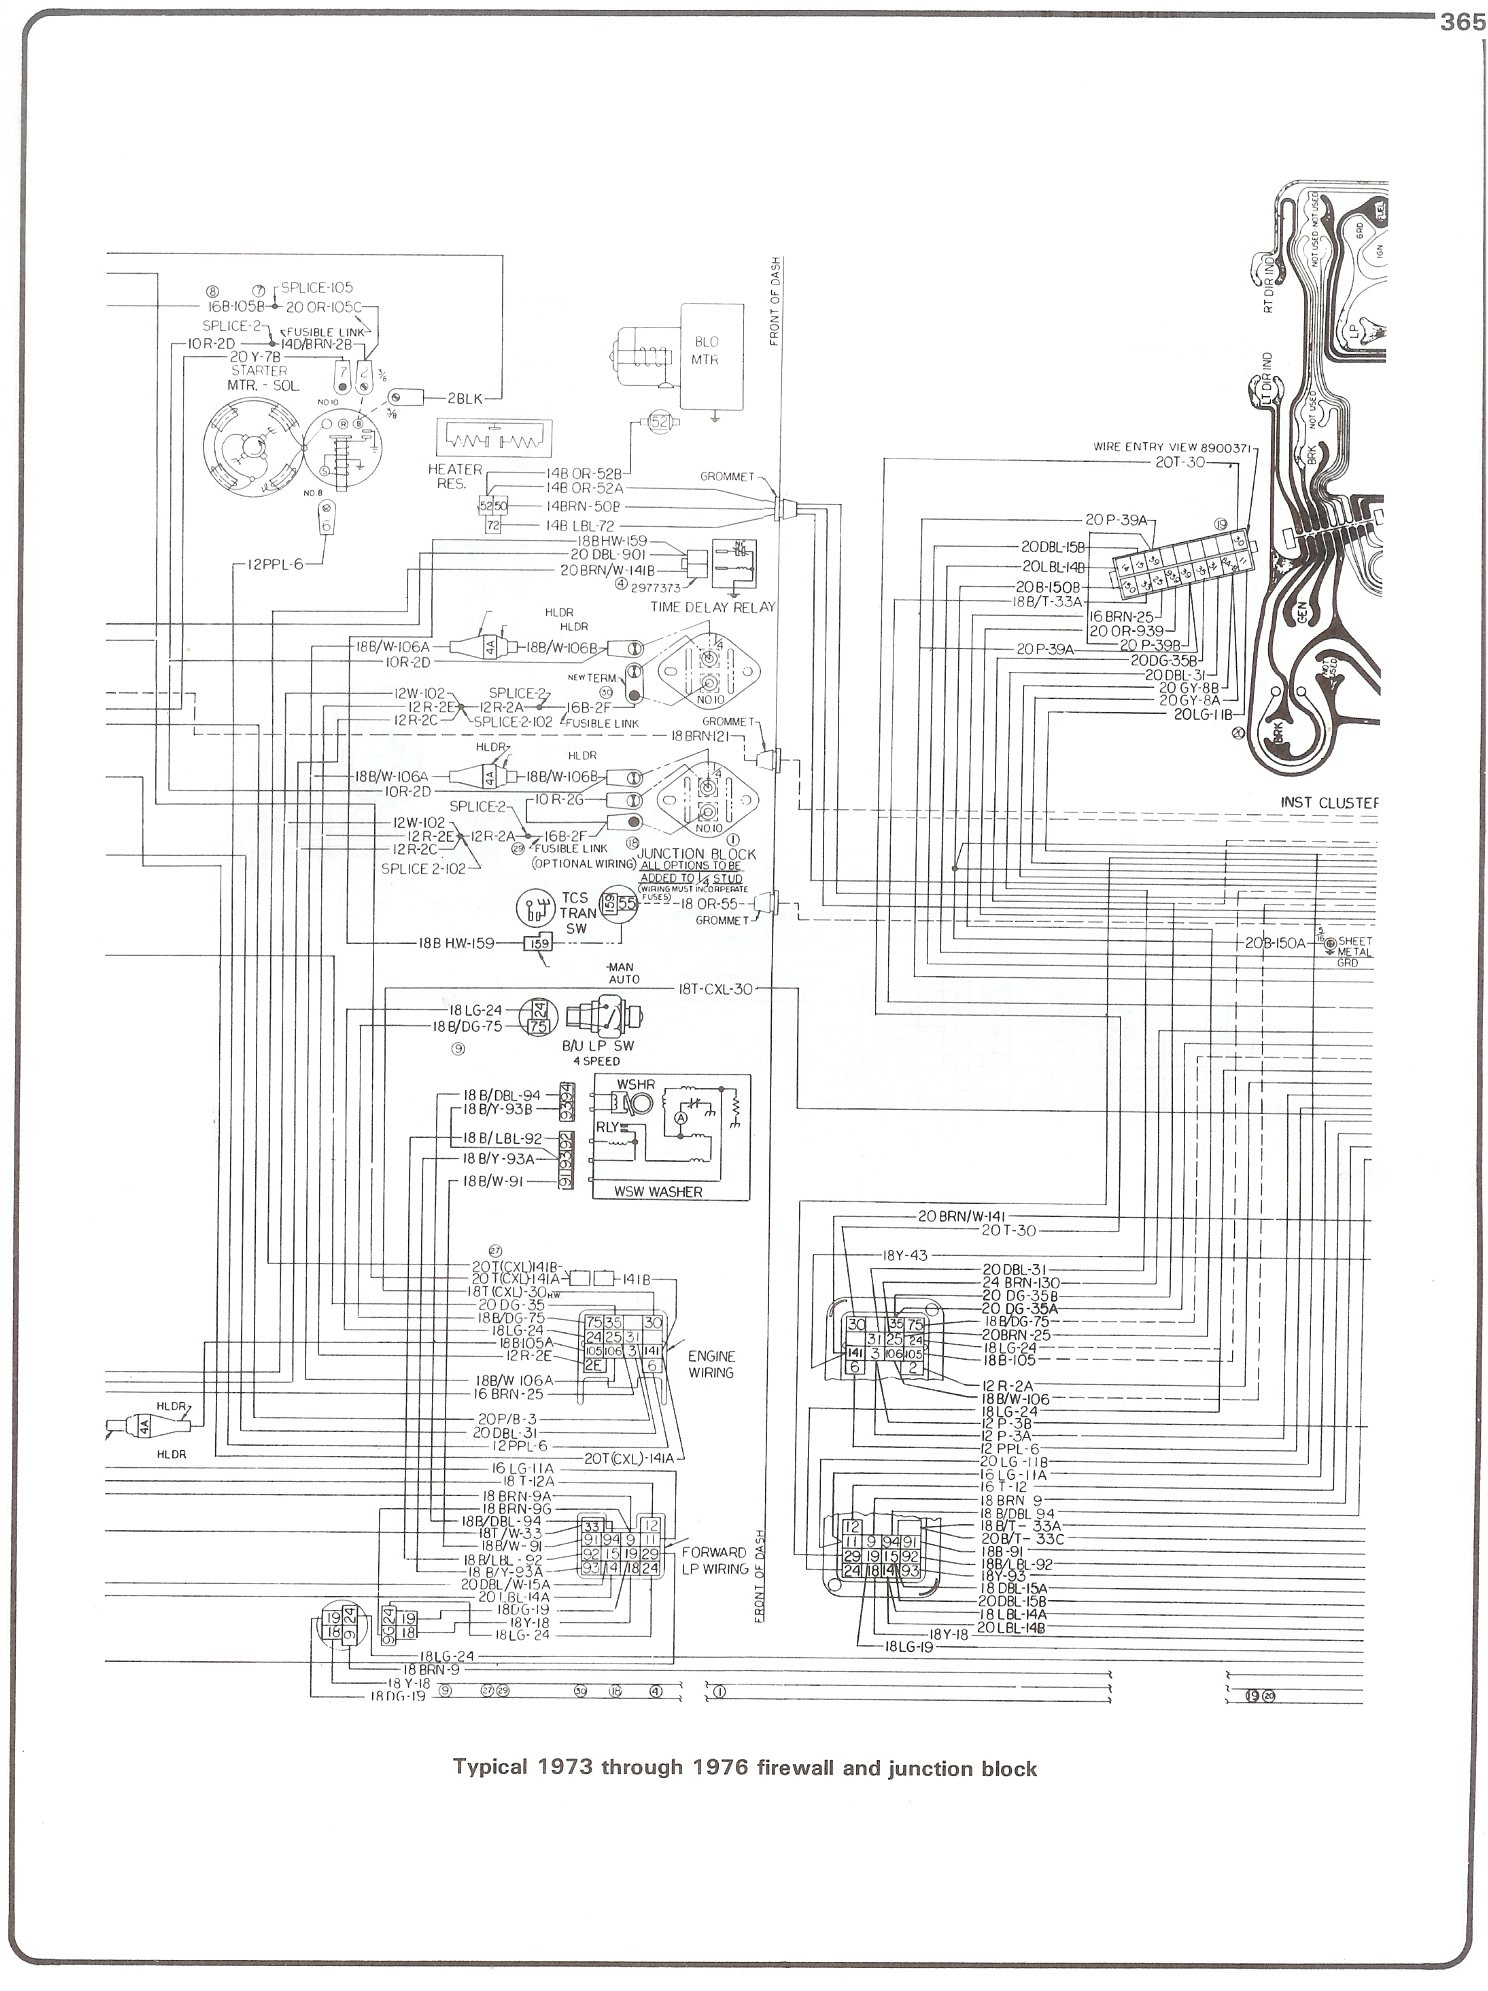 73 76_firewall_junct complete 73 87 wiring diagrams Basic Engine Wiring Diagram Chevy at suagrazia.org